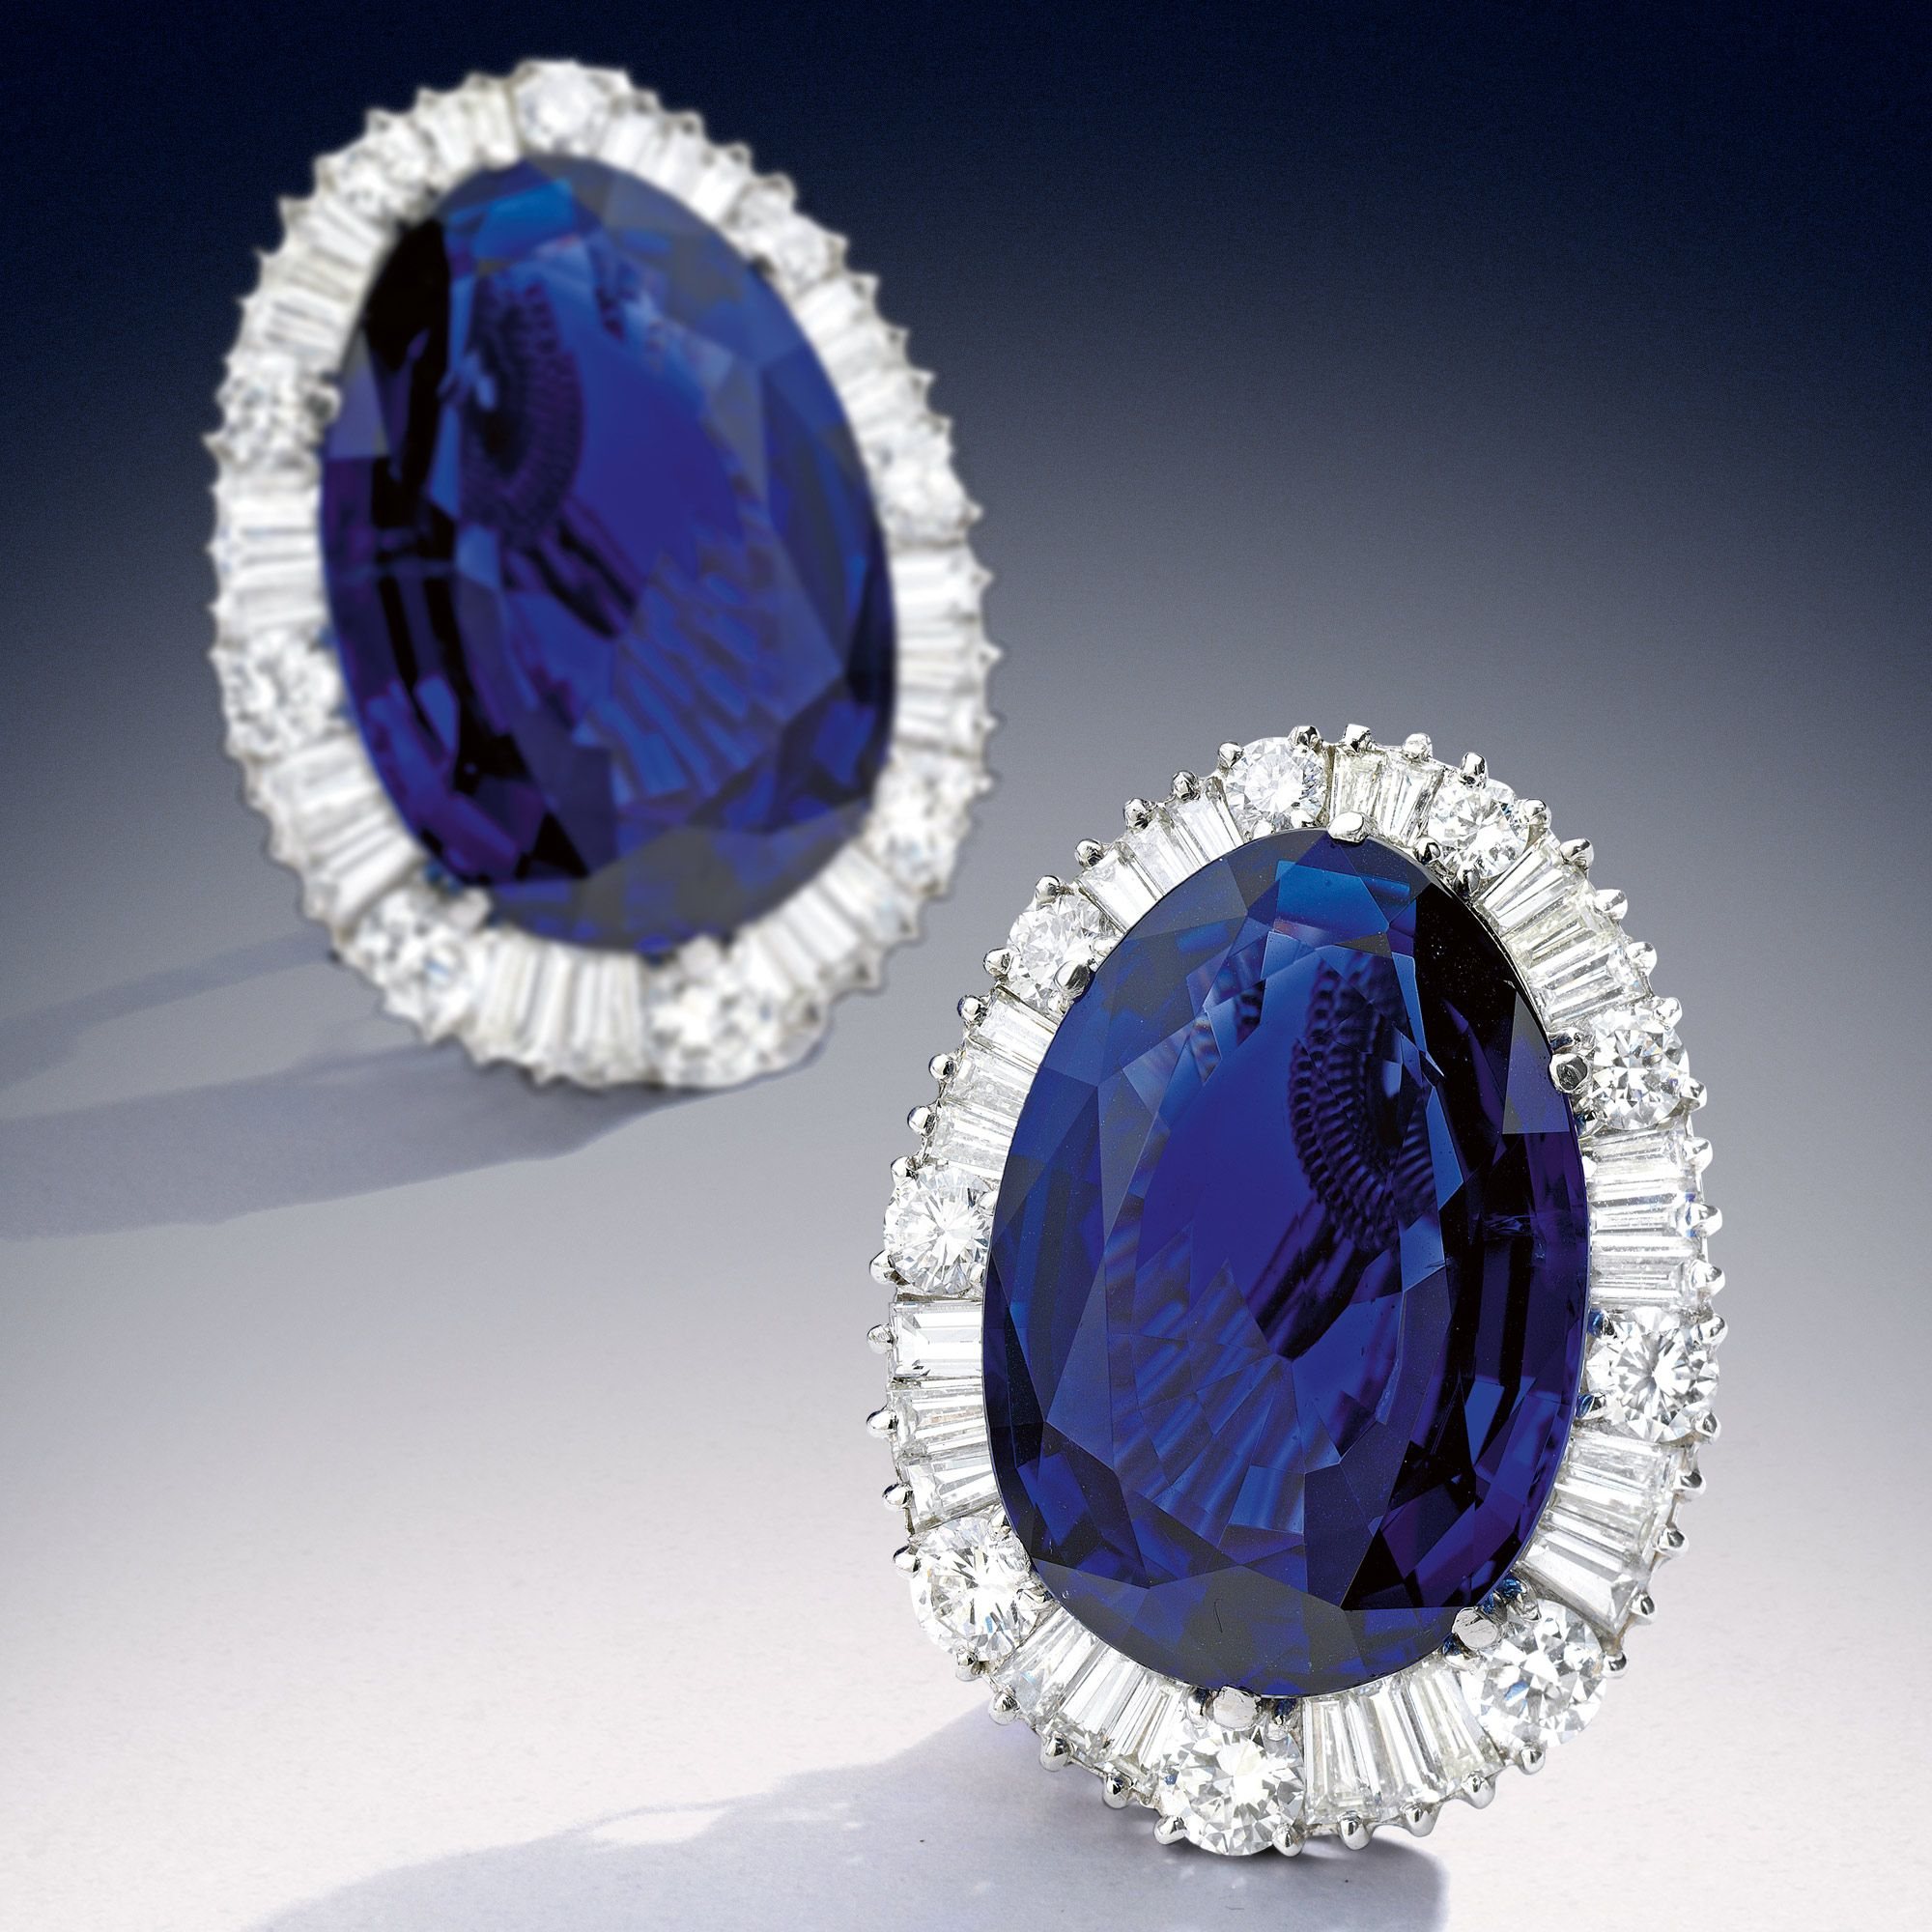 burmese sell jewels listings blue a royal carat magnificent auctions lot buy details en and diamond sapphire